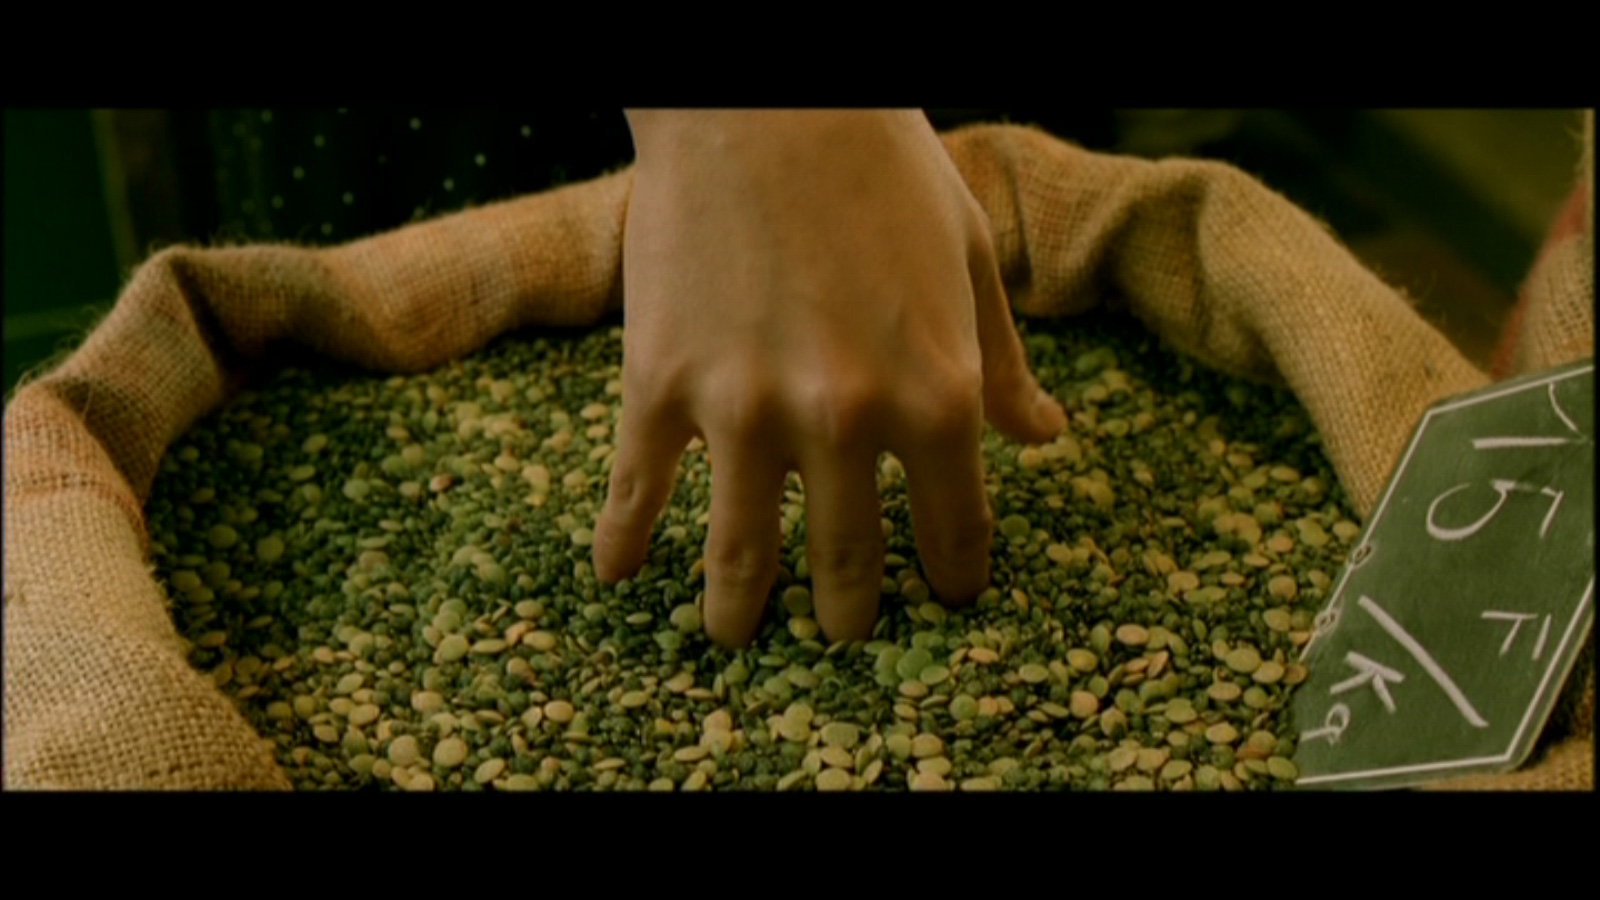 Amélie's fingers in the grain